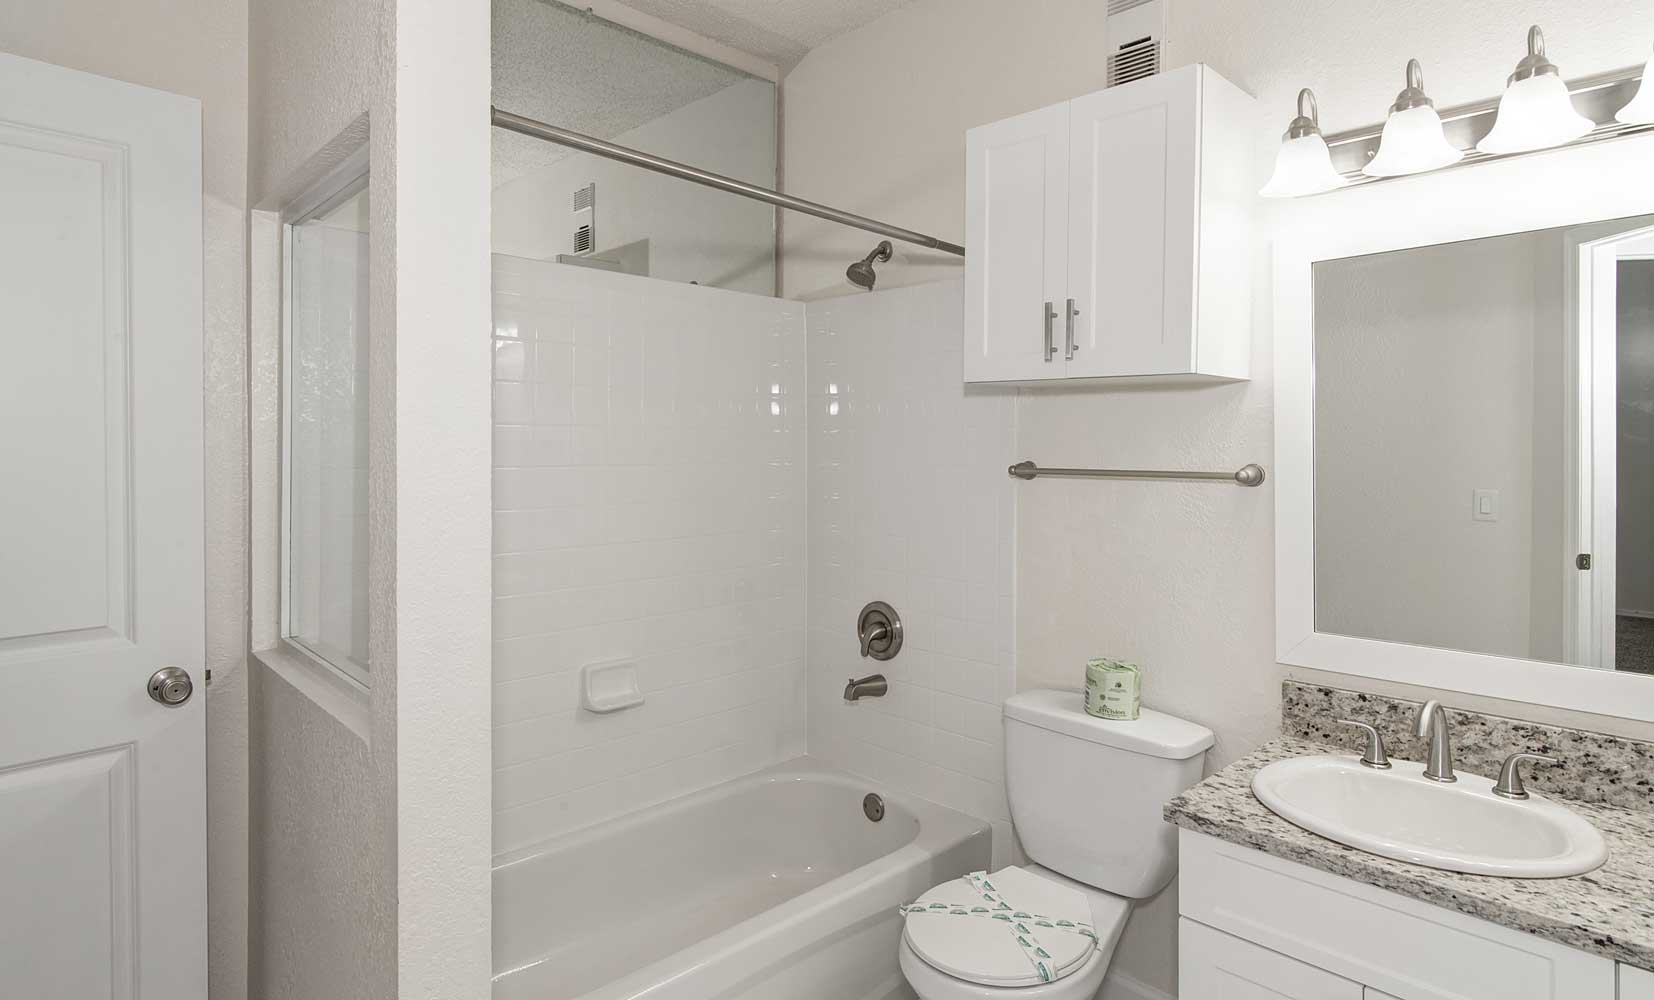 Shower and Tub at Waterford Point Apartments in Miami, Florida